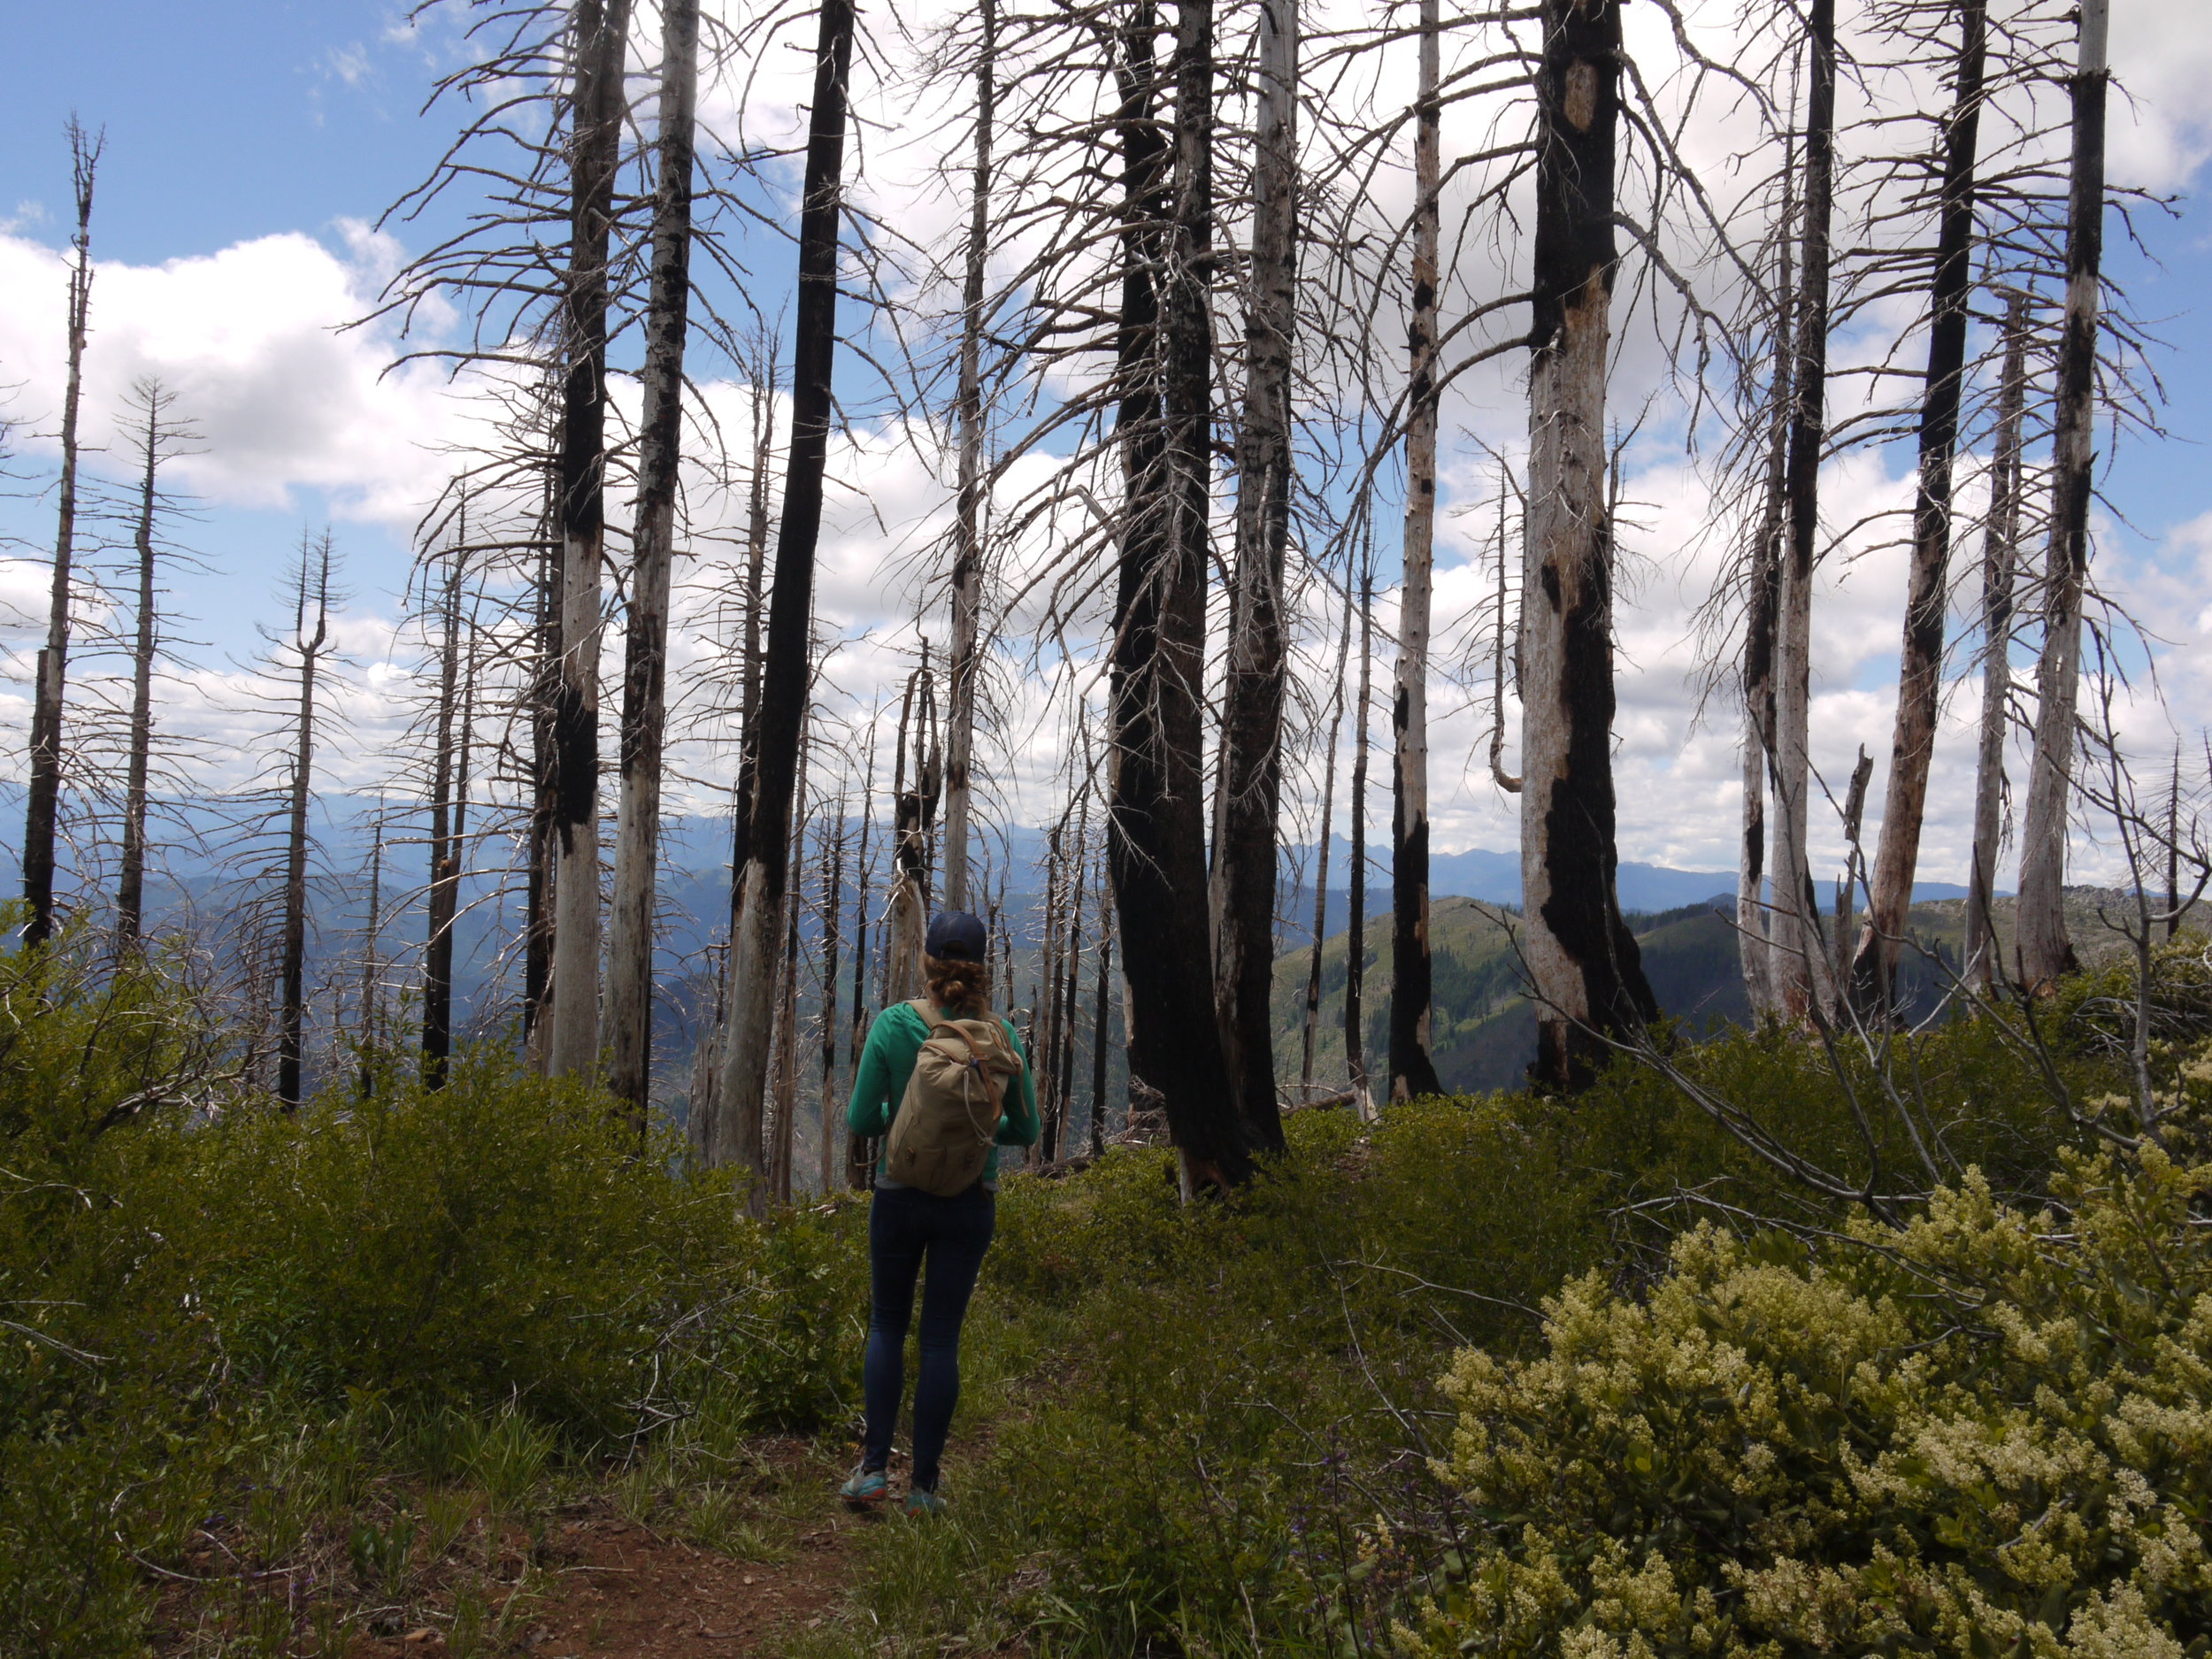 Hiking on the Boundary Trail among burned trees and the regrowth of fire-loving shrubs on the Siskiyou Crest, 5 years after the moderate burn in 2012.